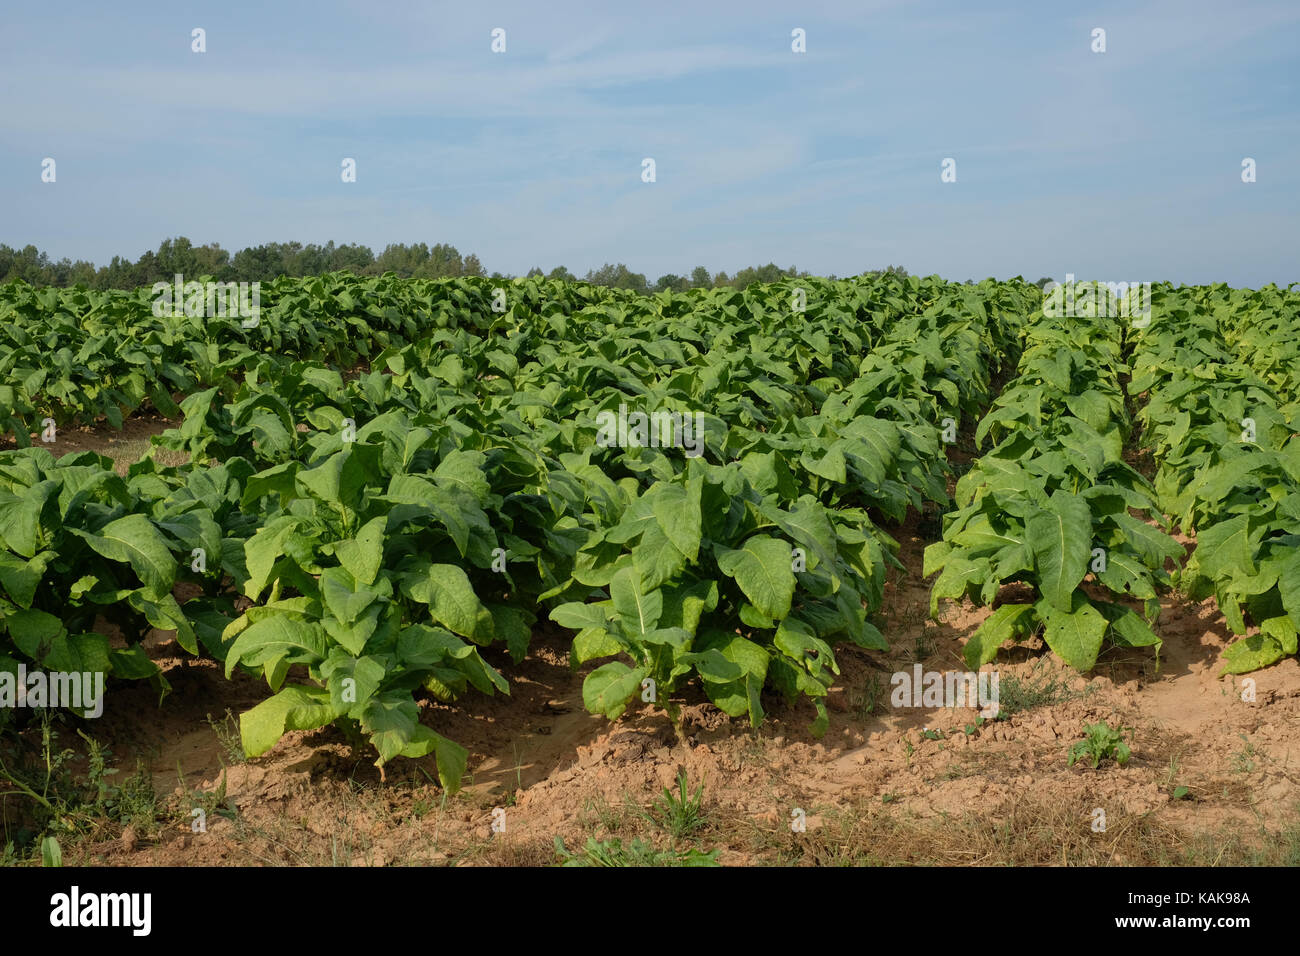 Tobacco farm north carolina stock photos tobacco farm north rows of tobacco plants in a field north carolina tobacco crop stock image sciox Image collections